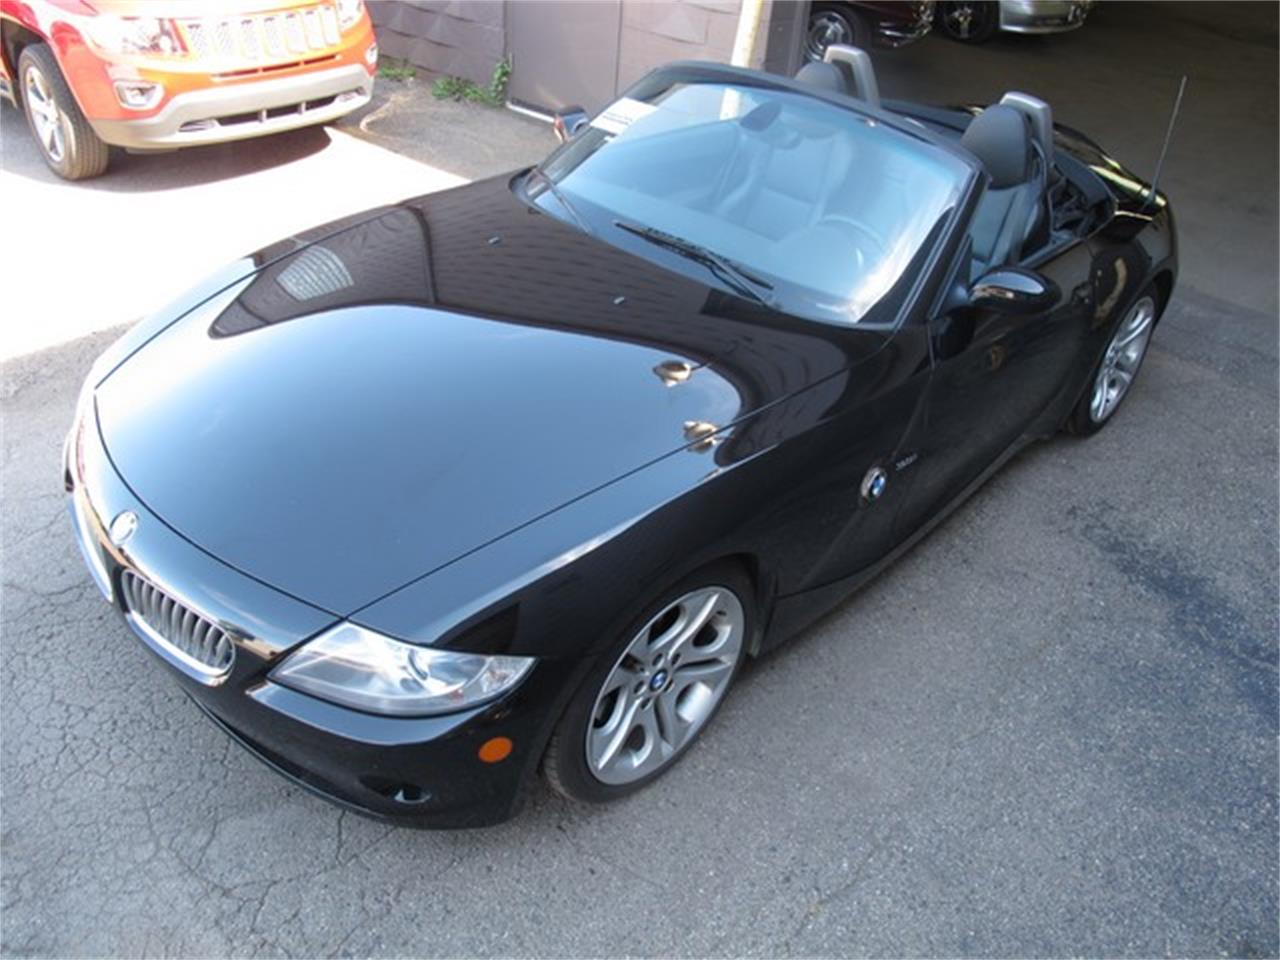 Large Picture of 2005 Z4 located in Troy Michigan - $9,950.00 Offered by Classic Auto Showplace - NUY8